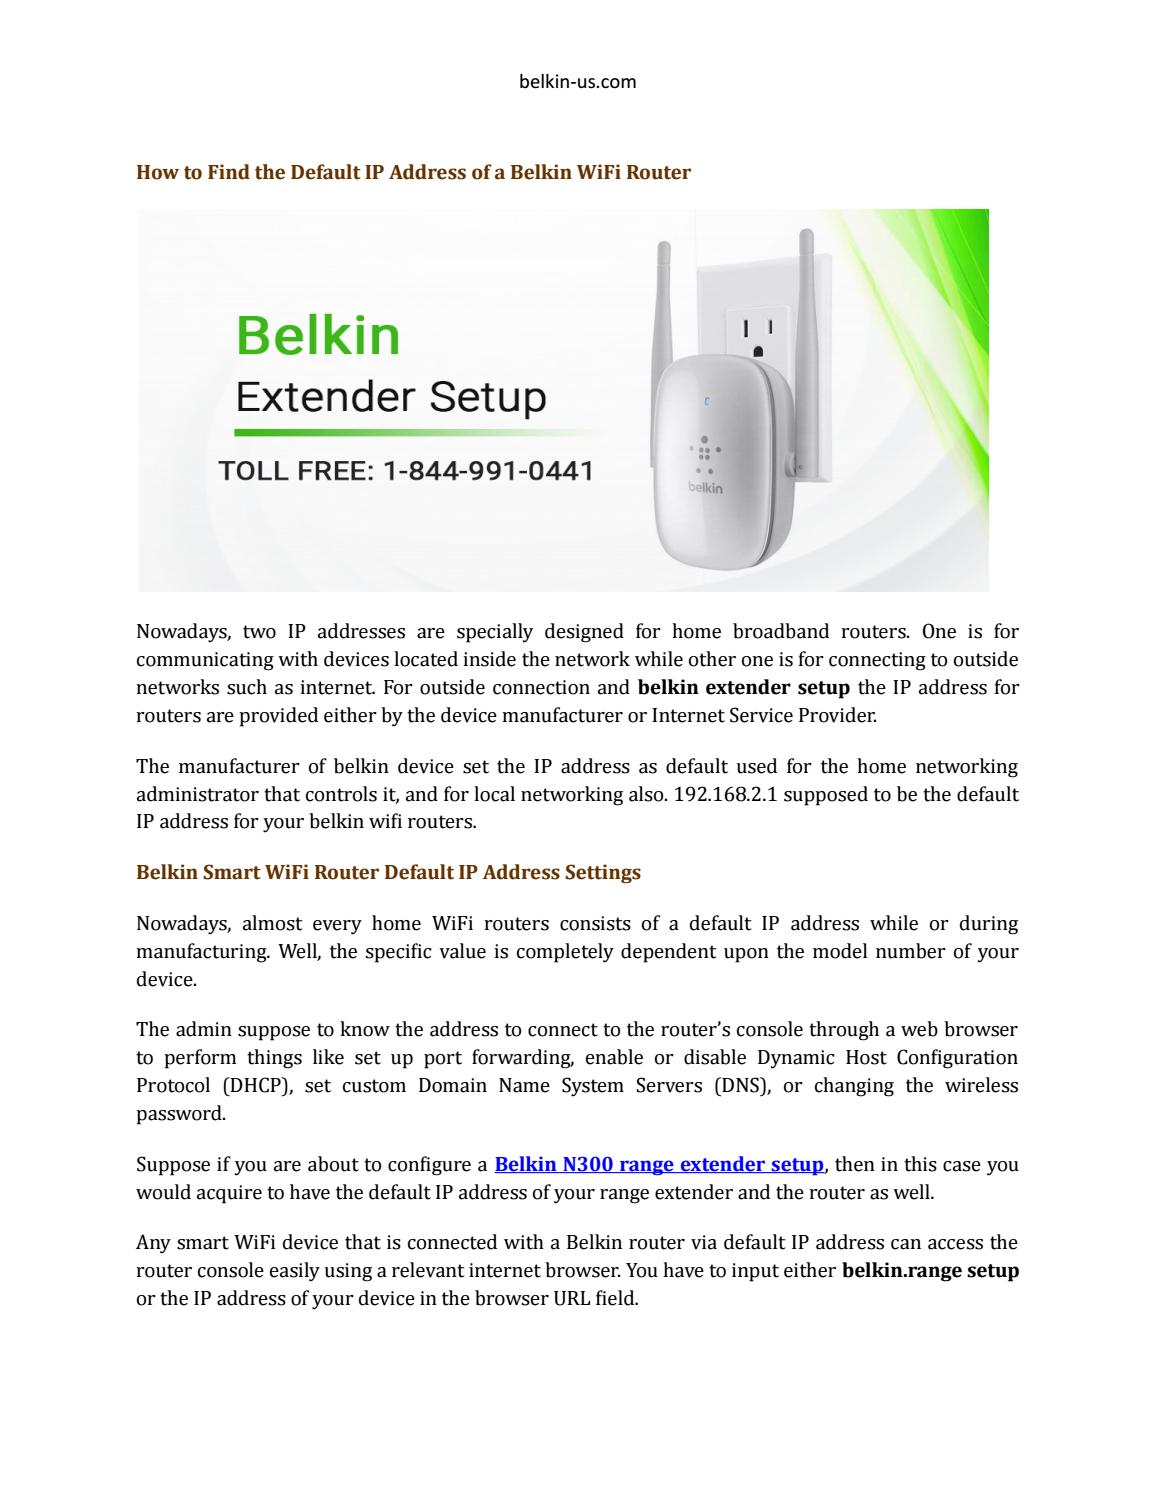 How to Find the Default IP Address of a Belkin WiFi Router by henrykaif54 -  issuu